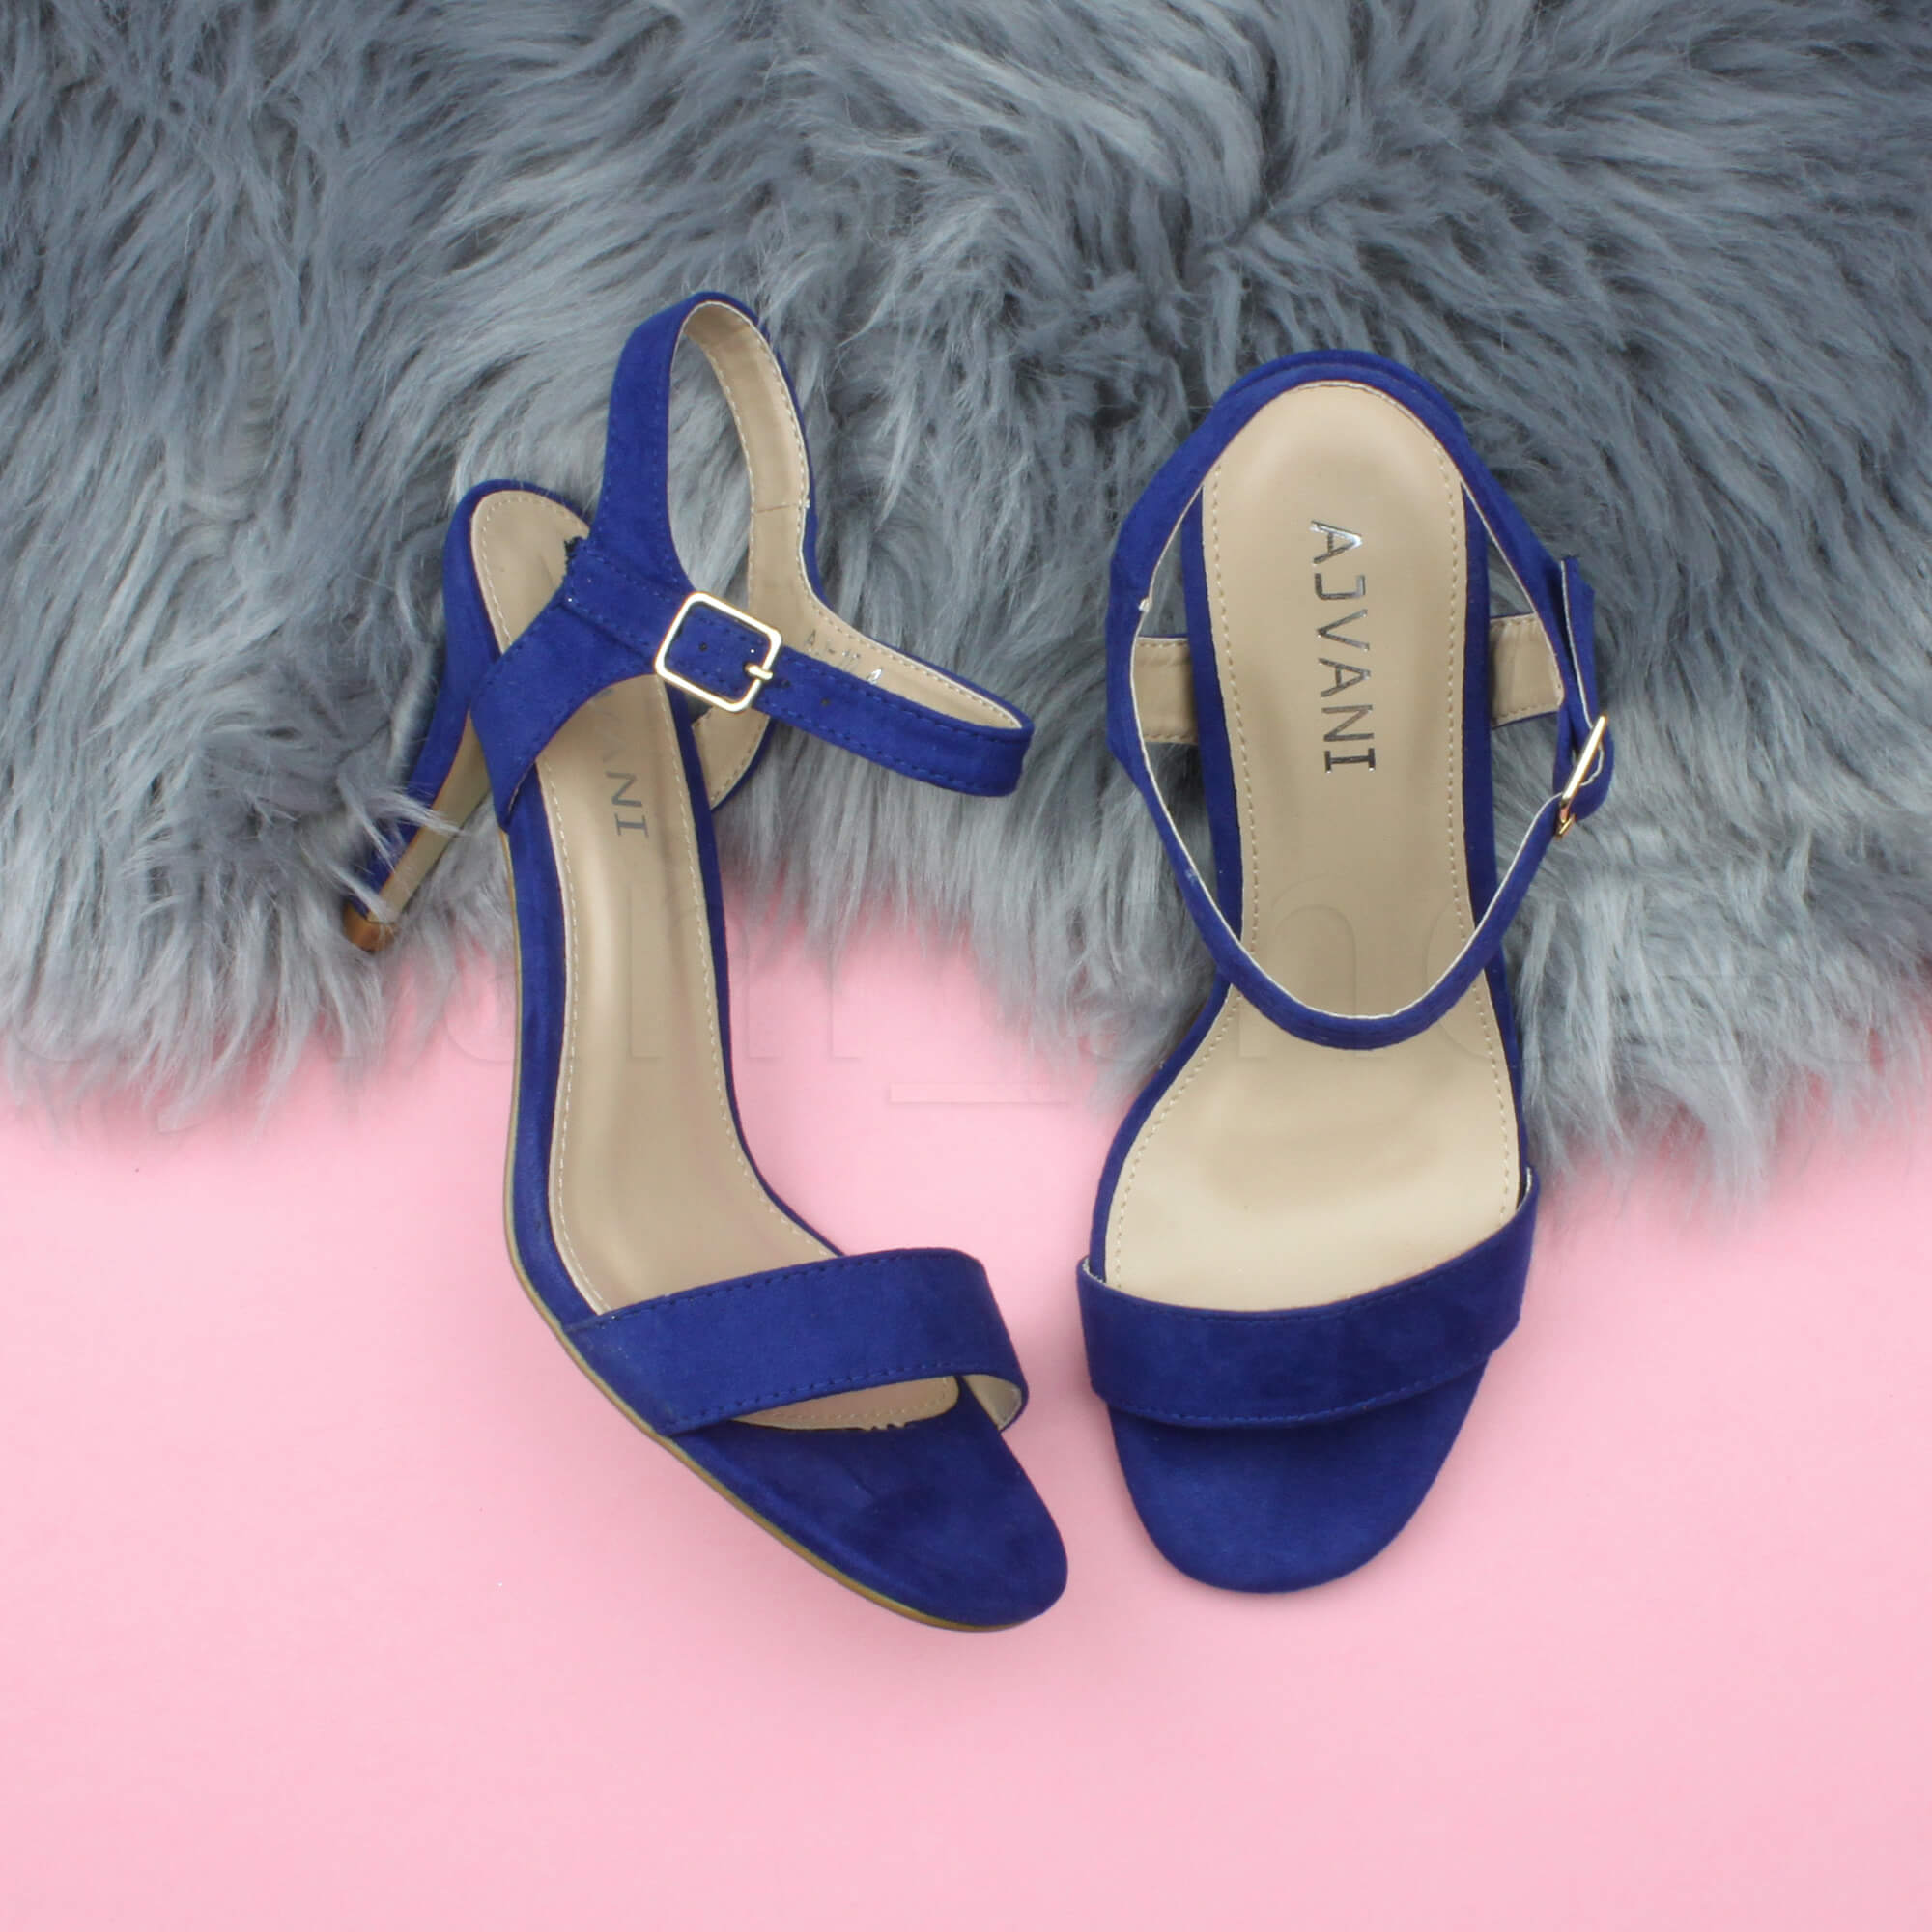 WOMENS-LADIES-HIGH-HEEL-BUCKLE-STRAPPY-BASIC-BARELY-THERE-SANDALS-SHOES-SIZE thumbnail 19